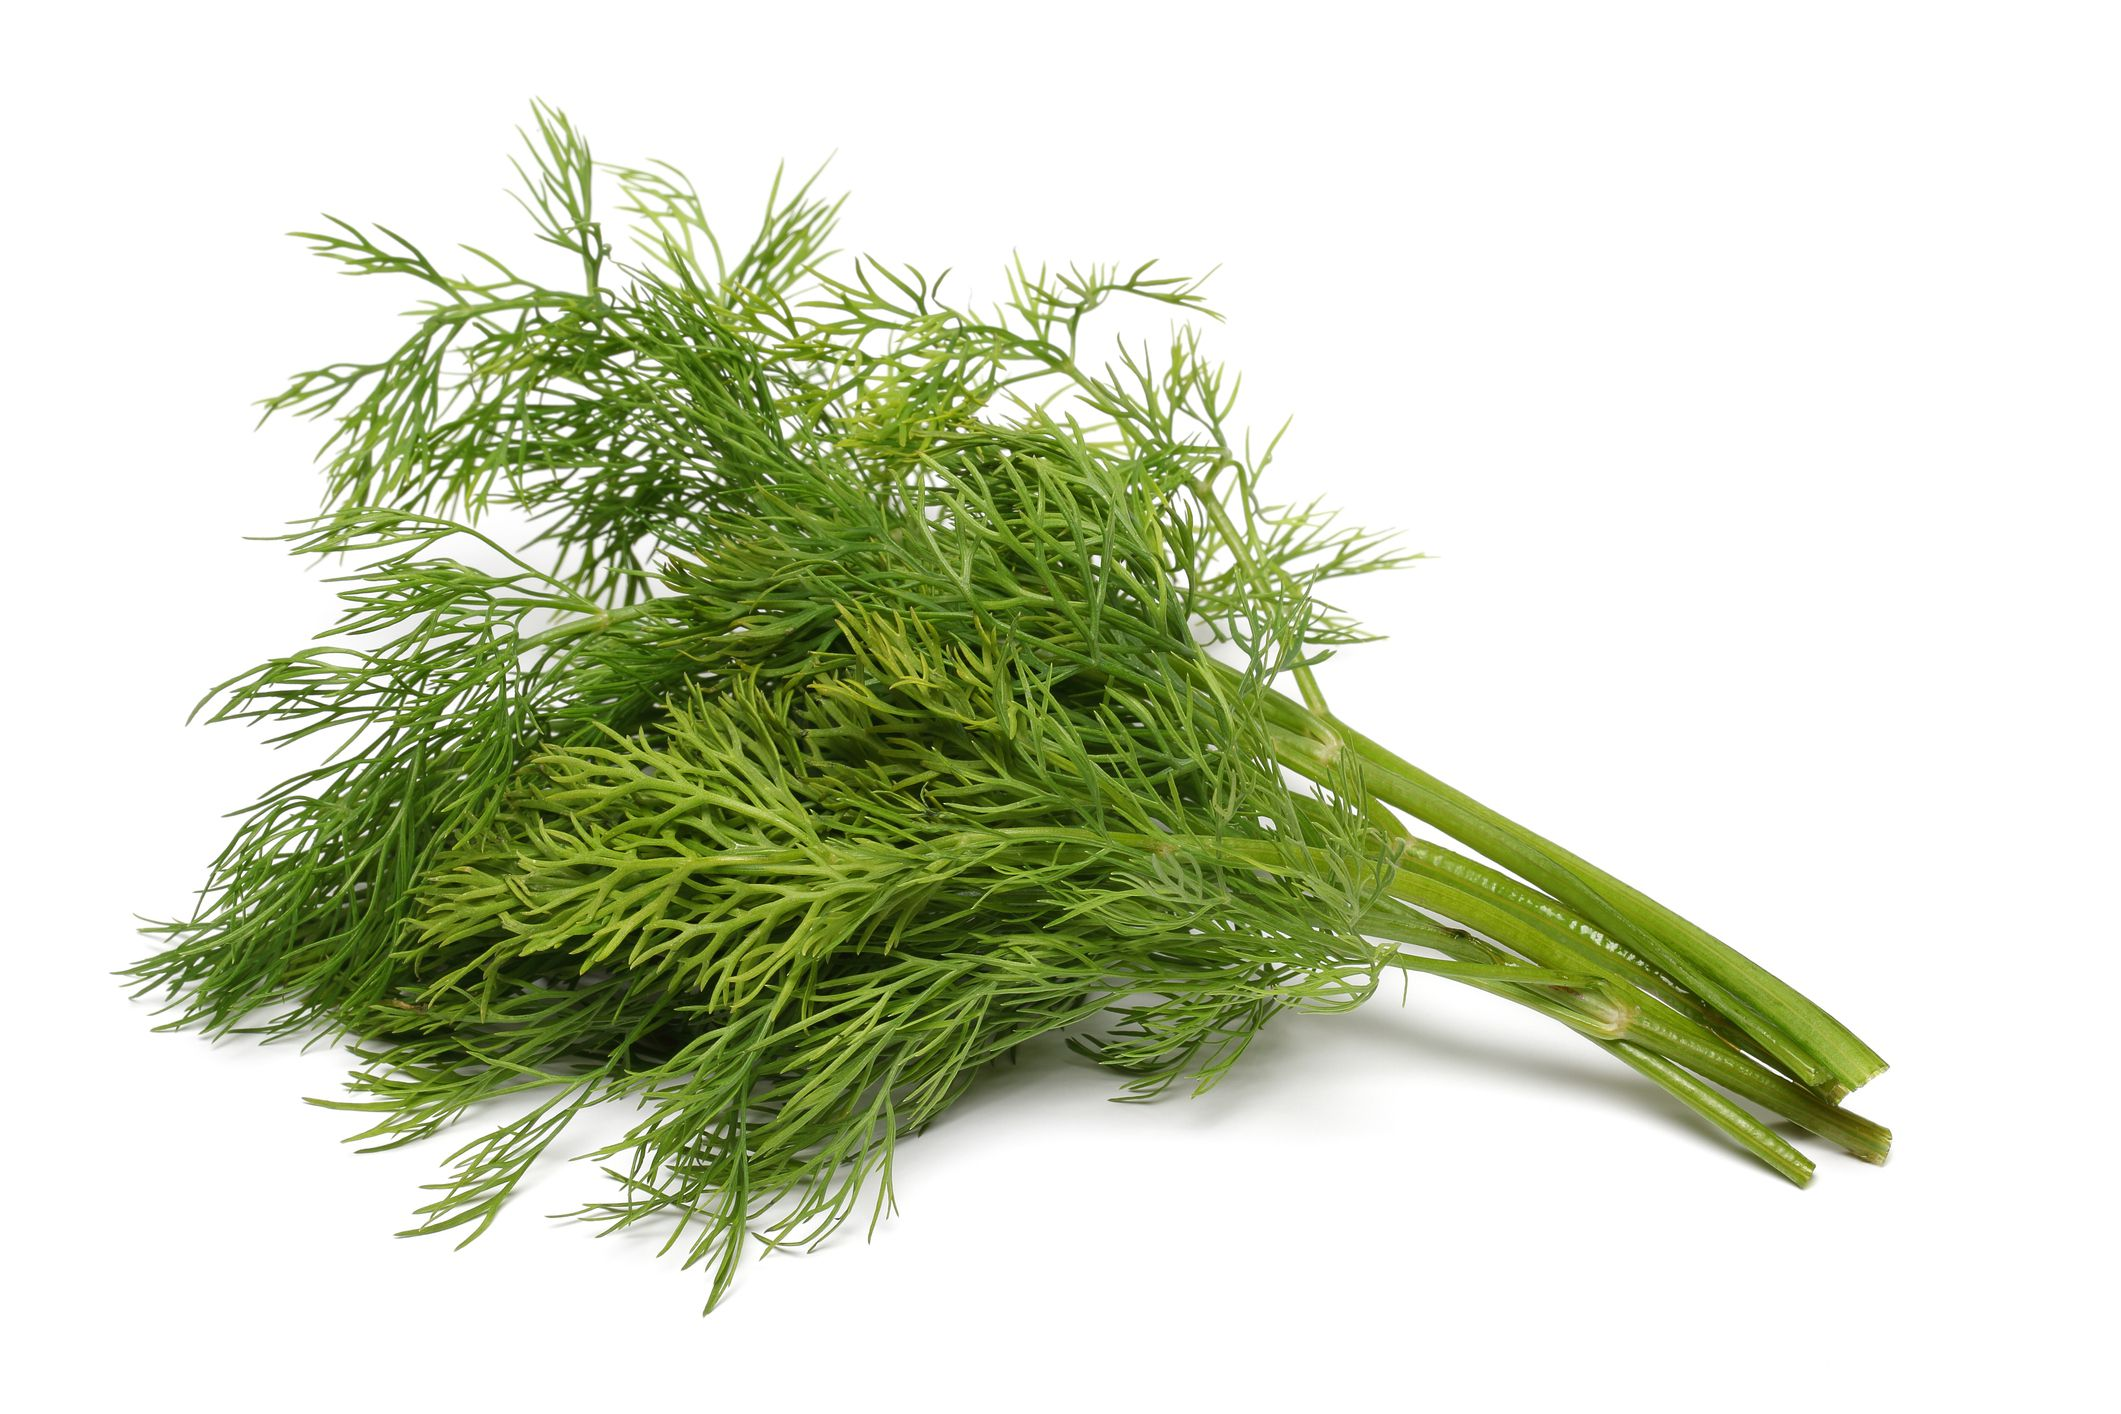 How To Store Dill Weed And Seeds